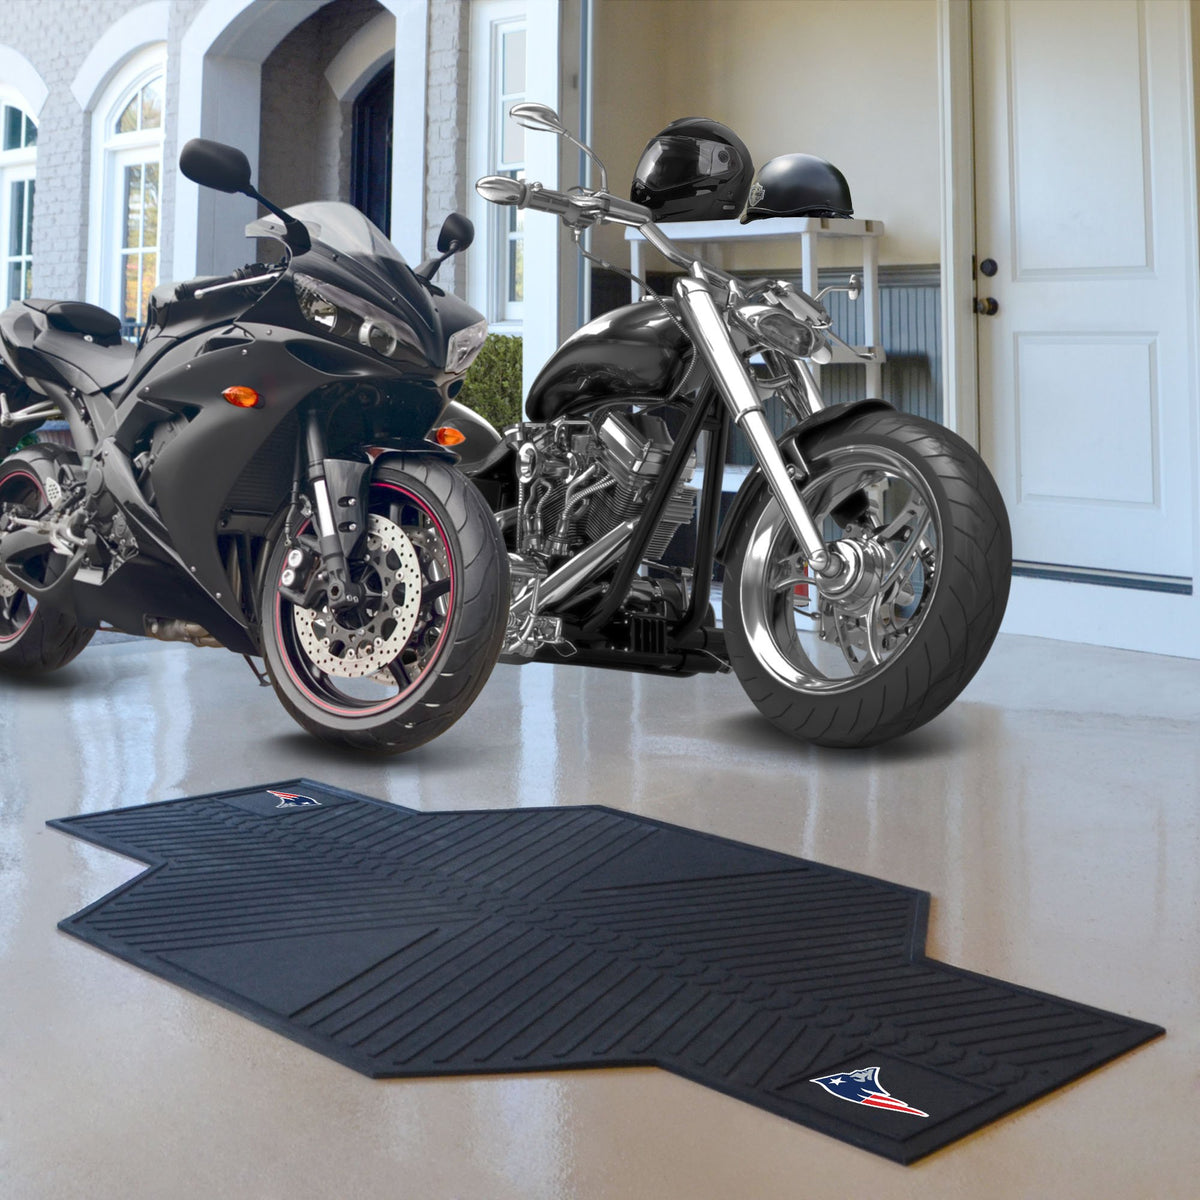 "NFL - Motorcycle Mat, 82.5"" x 42"" NFL Mats, Motorcycle Accessory, Motorcycle Mat, NFL, Auto Fan Mats New England Patriots"